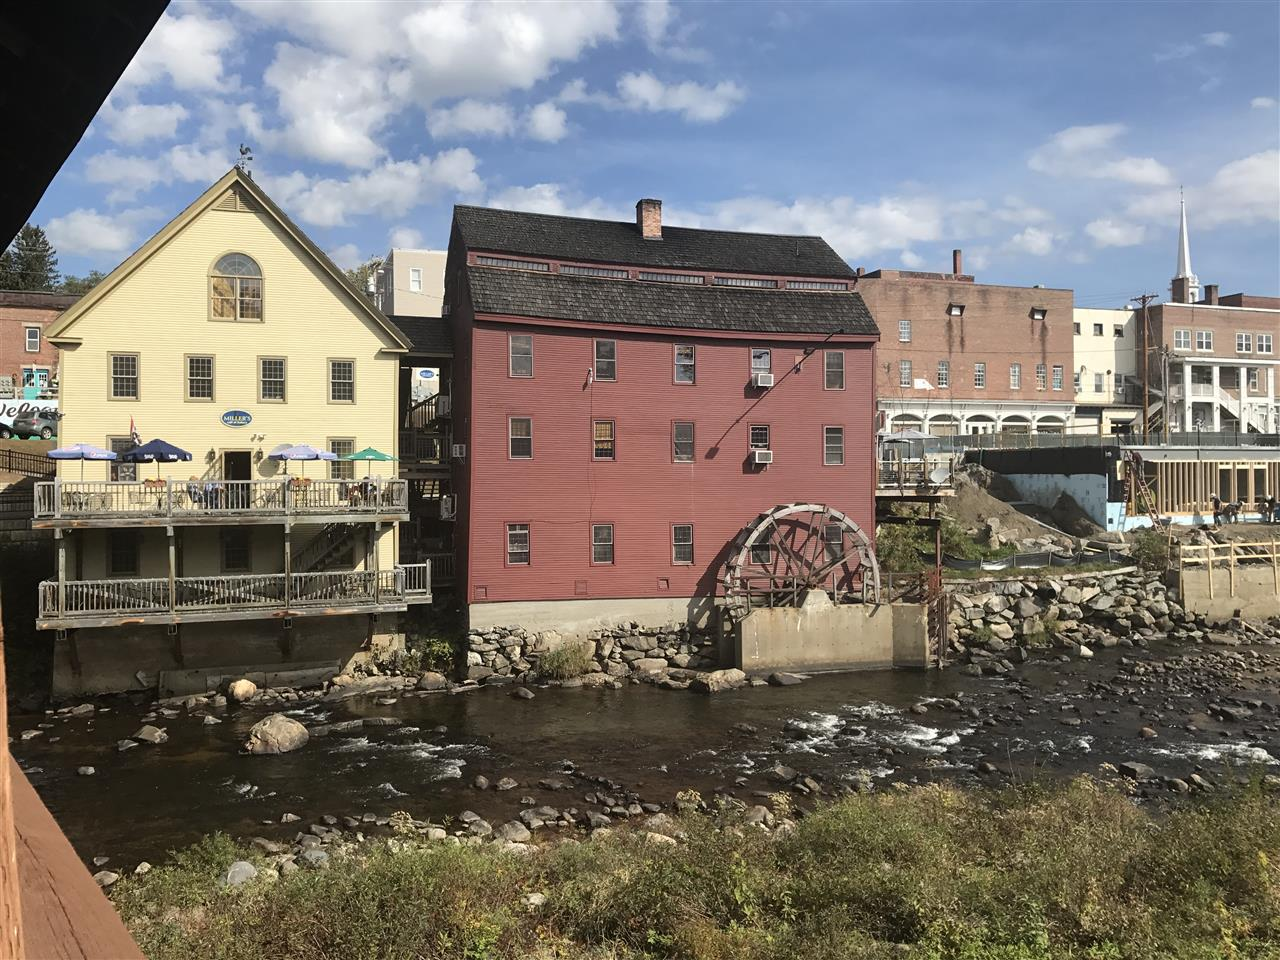 The historic grist mill building now featuring restaurants and more in downtown Littleton, NH.